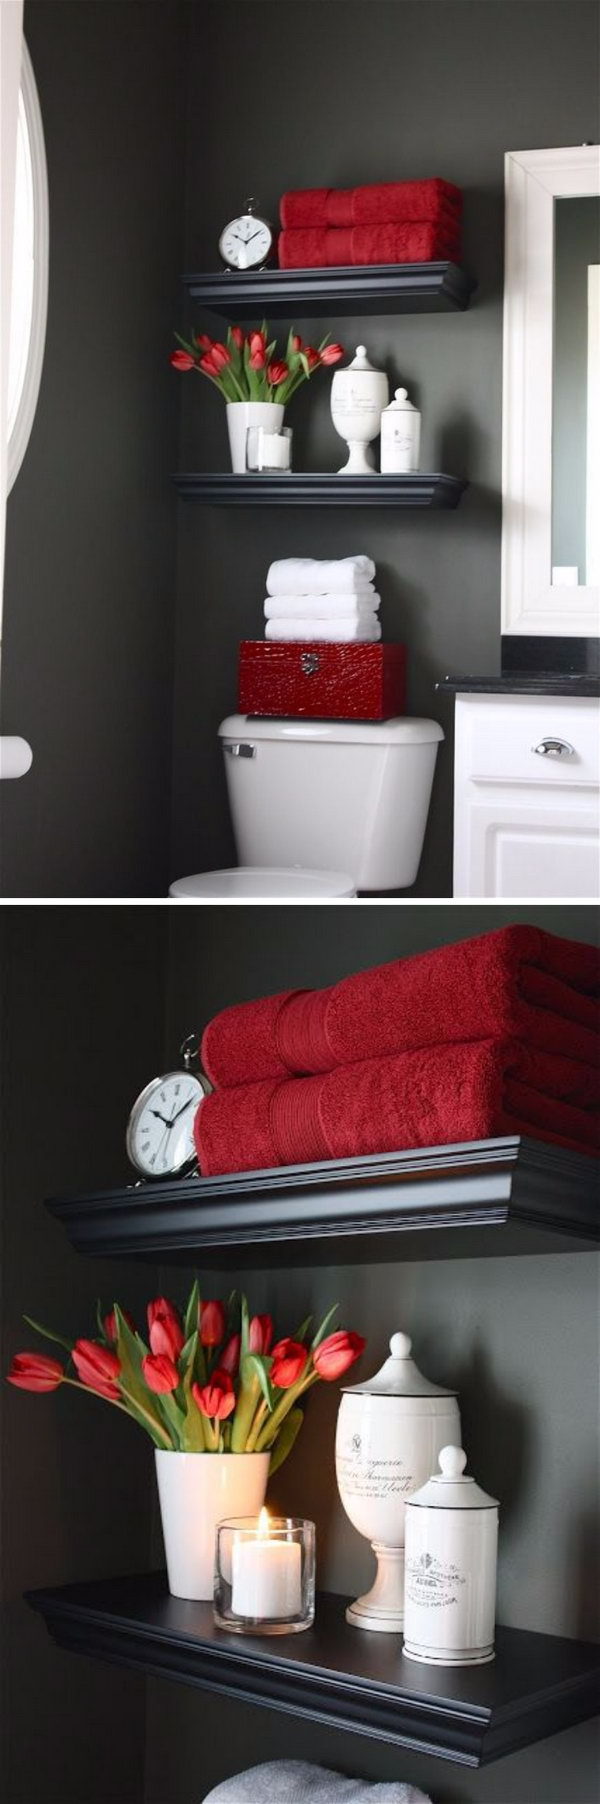 Houzz Bathroom Over The Toilet Storage Ideas For Extra Space 2017